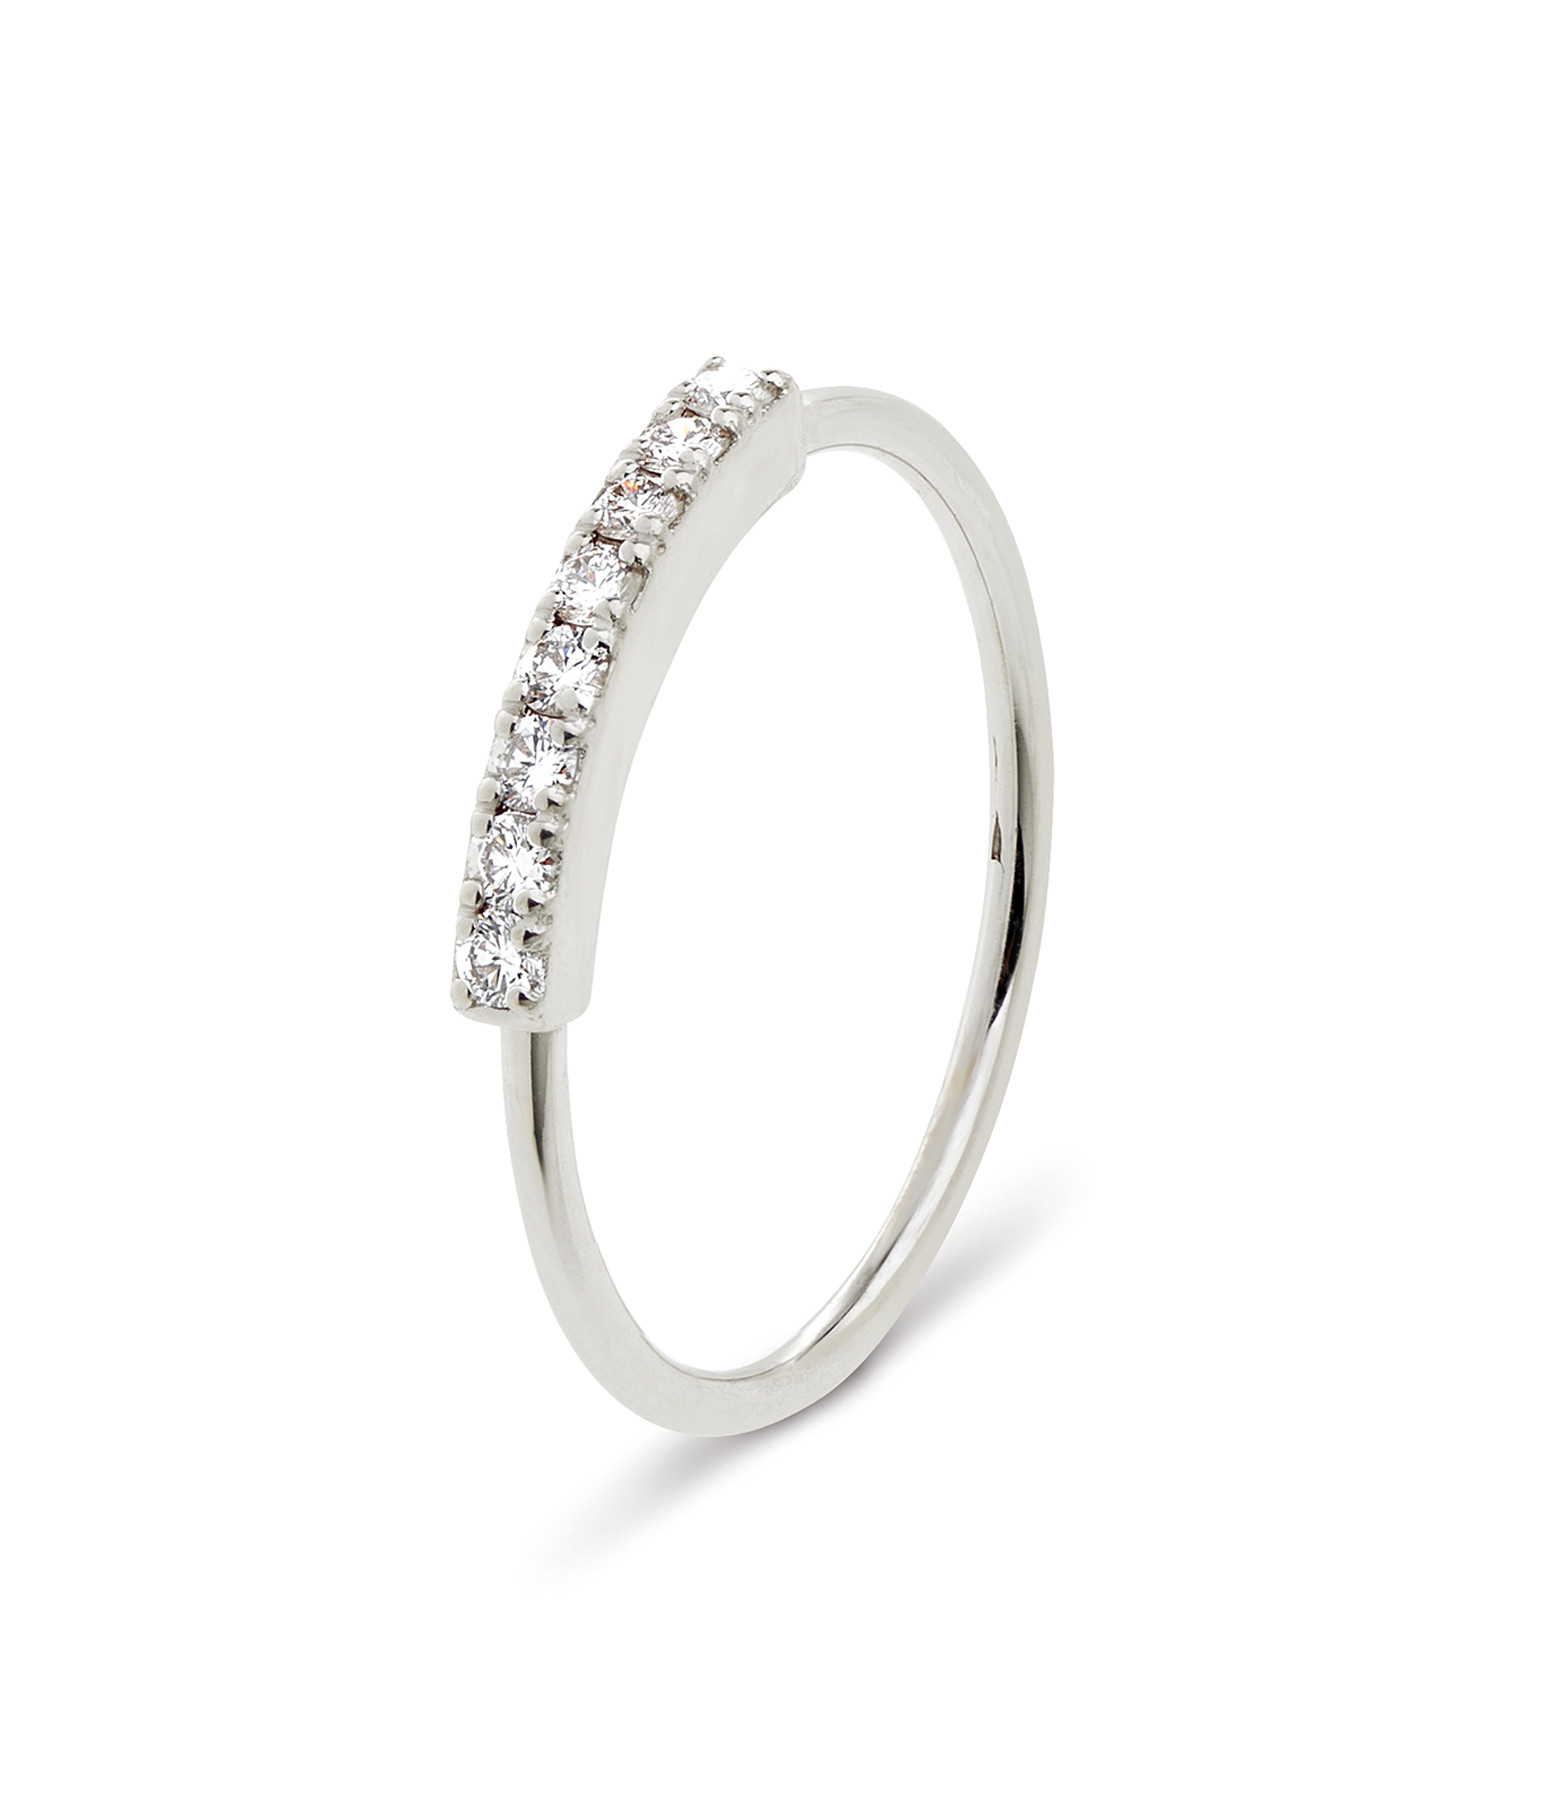 NAVA JOAILLERIE - Bague Demi-Alliance Hash Diamants Or Blanc